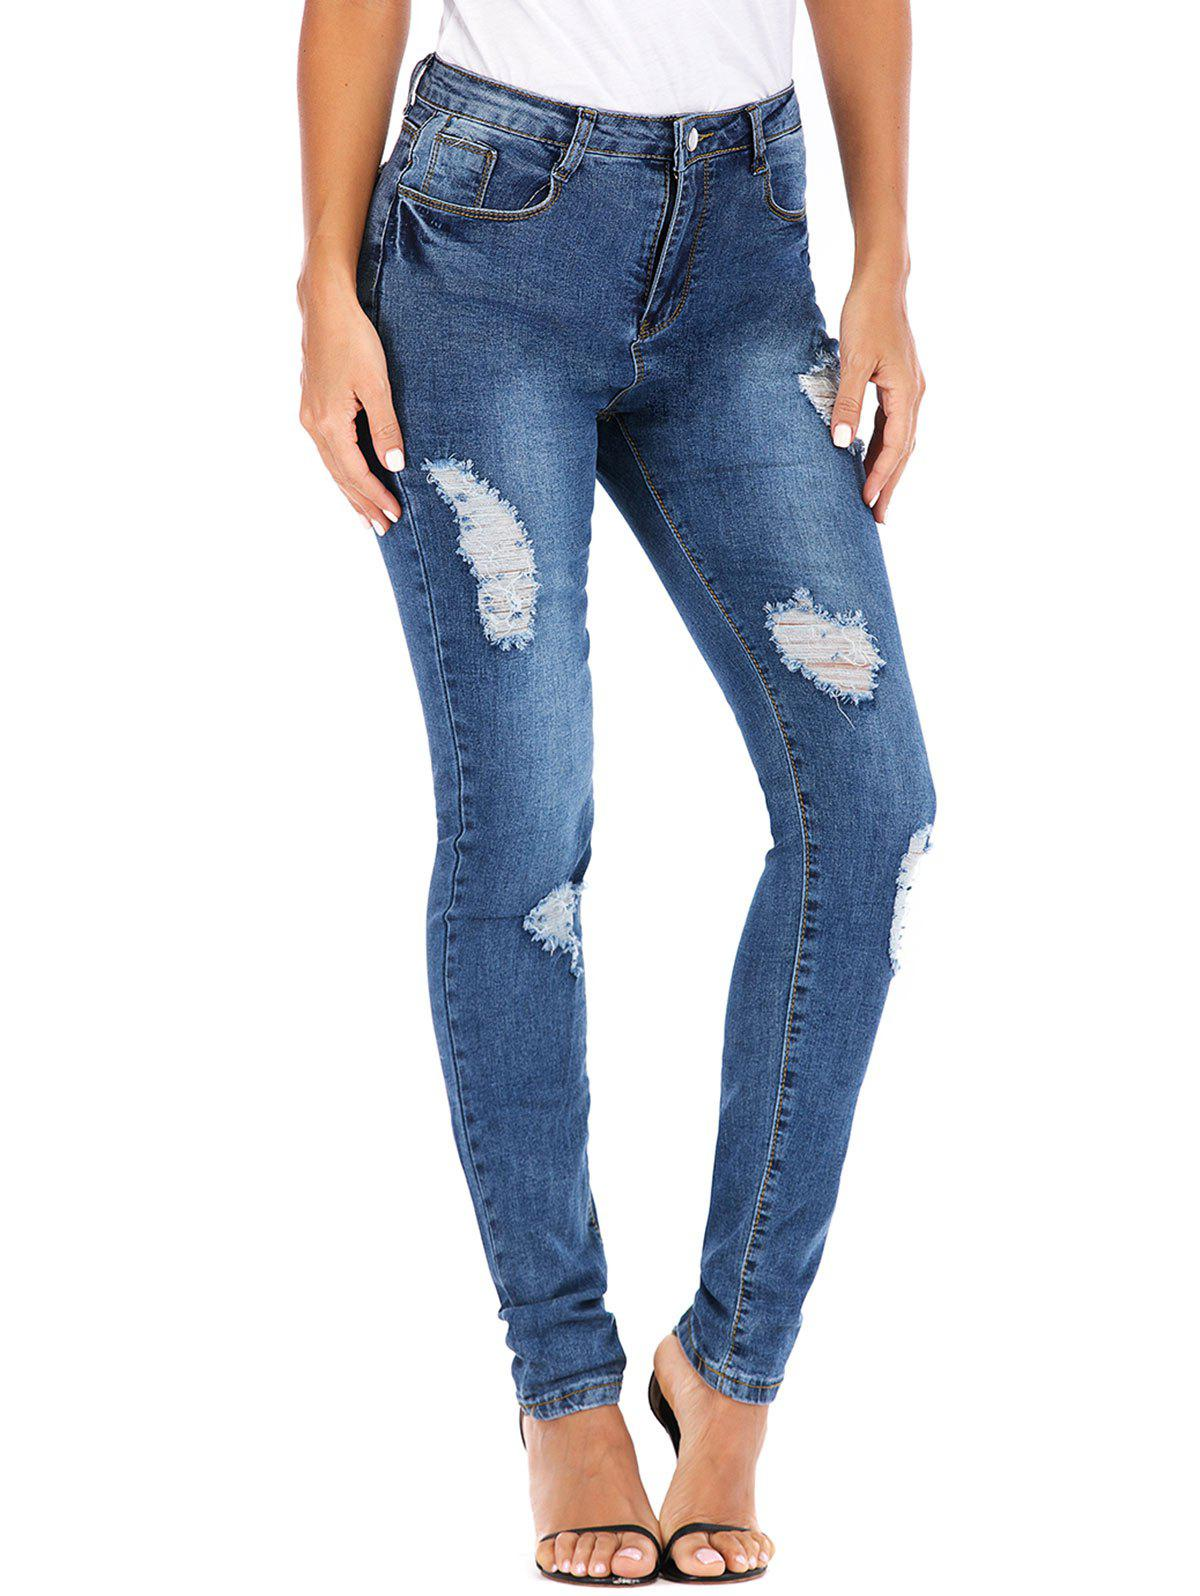 Unique Bleach Wash High Waisted Ripped Skinny Jeans